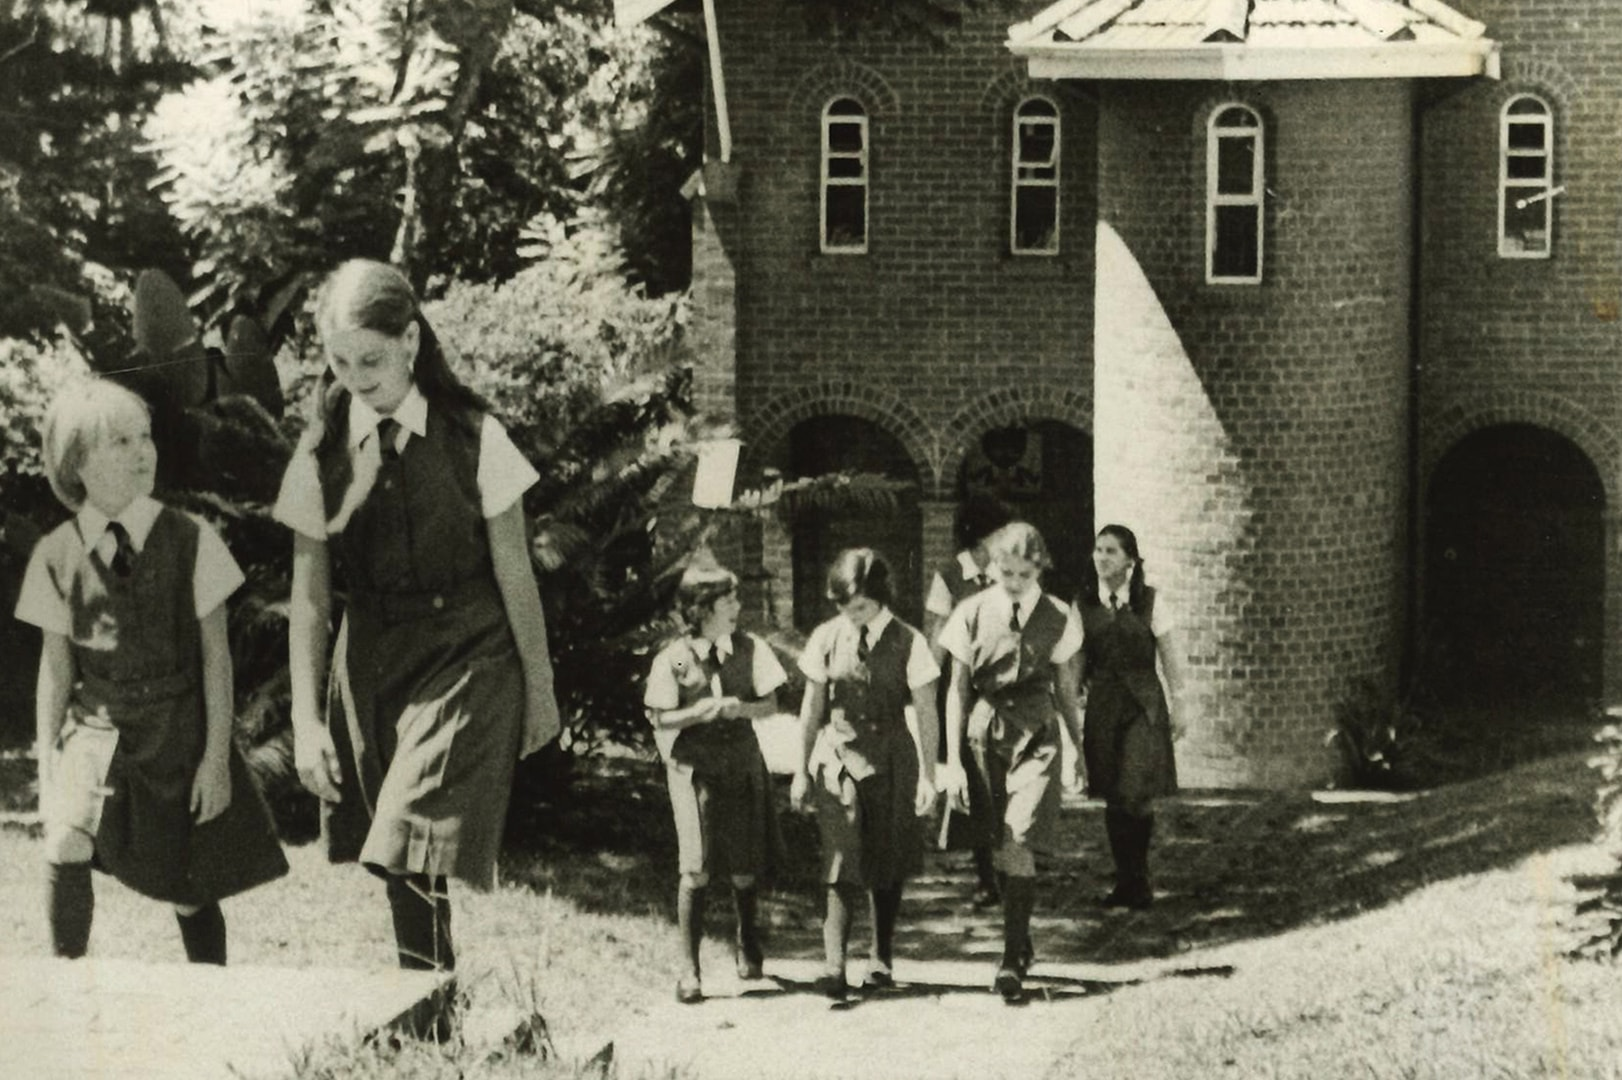 Children walking through a school.